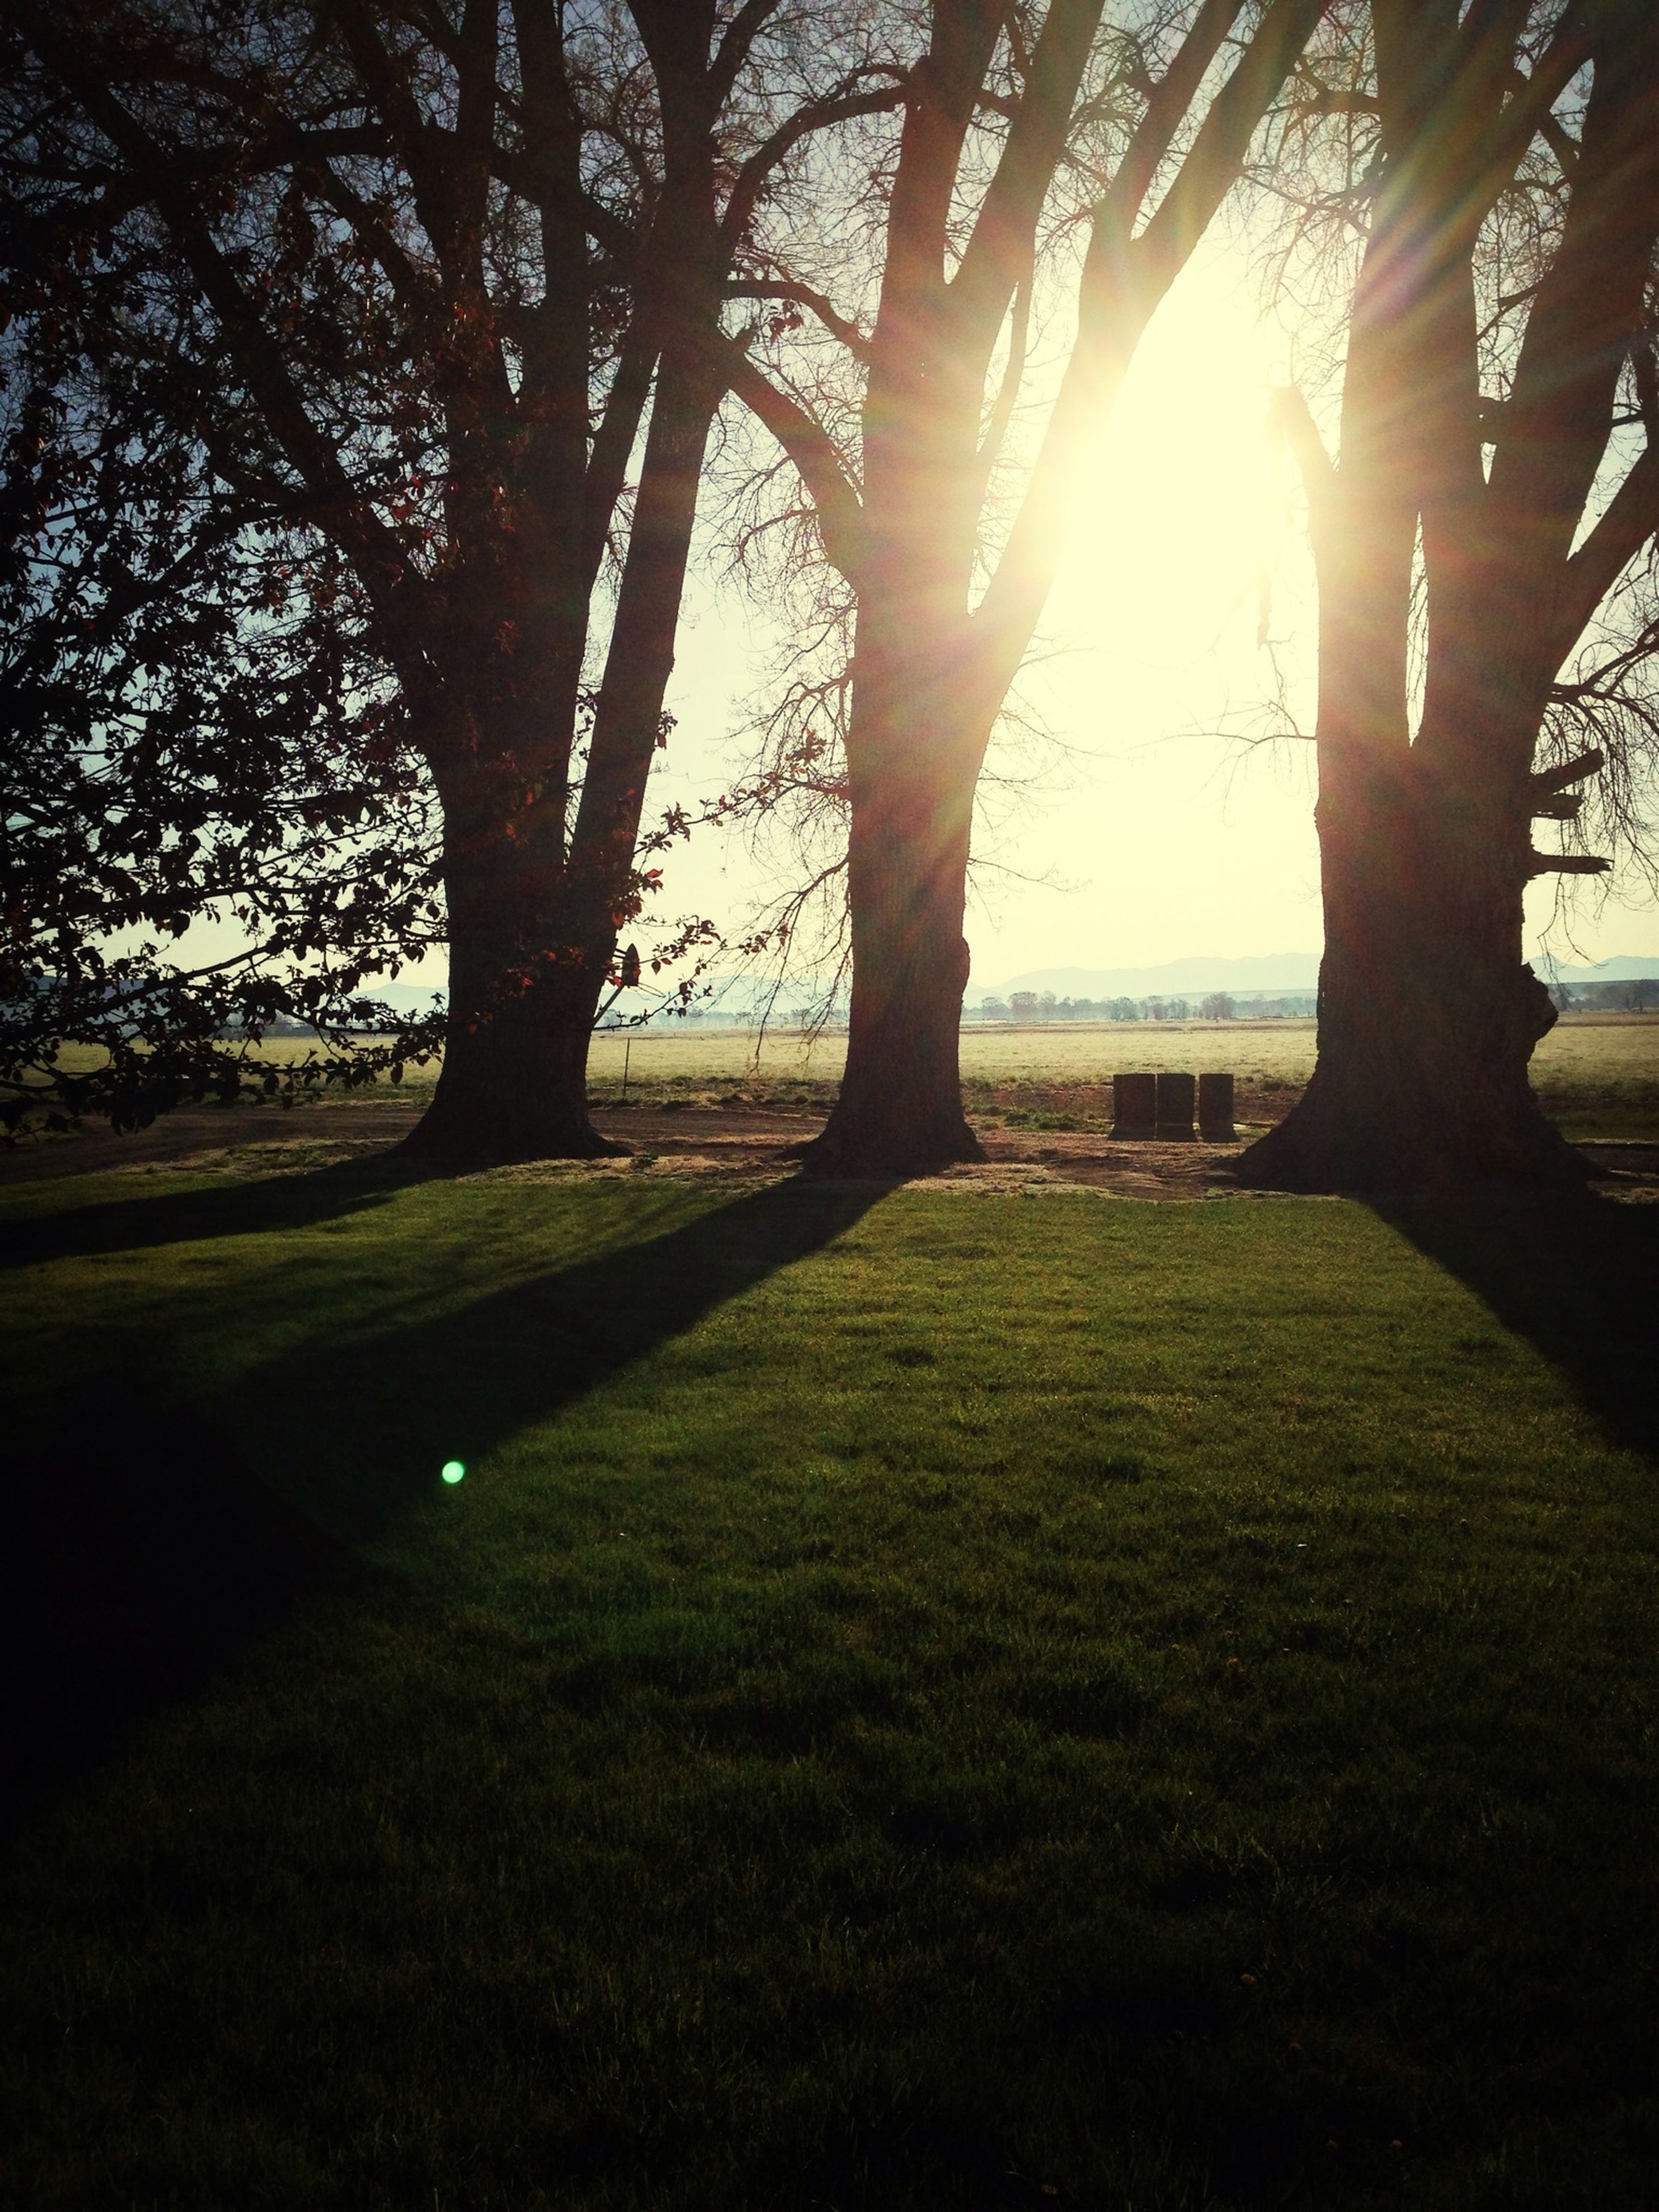 tree, grass, sun, sunlight, sunbeam, tranquility, lens flare, tree trunk, grassy, tranquil scene, field, nature, growth, beauty in nature, park - man made space, shadow, branch, scenics, landscape, sunny